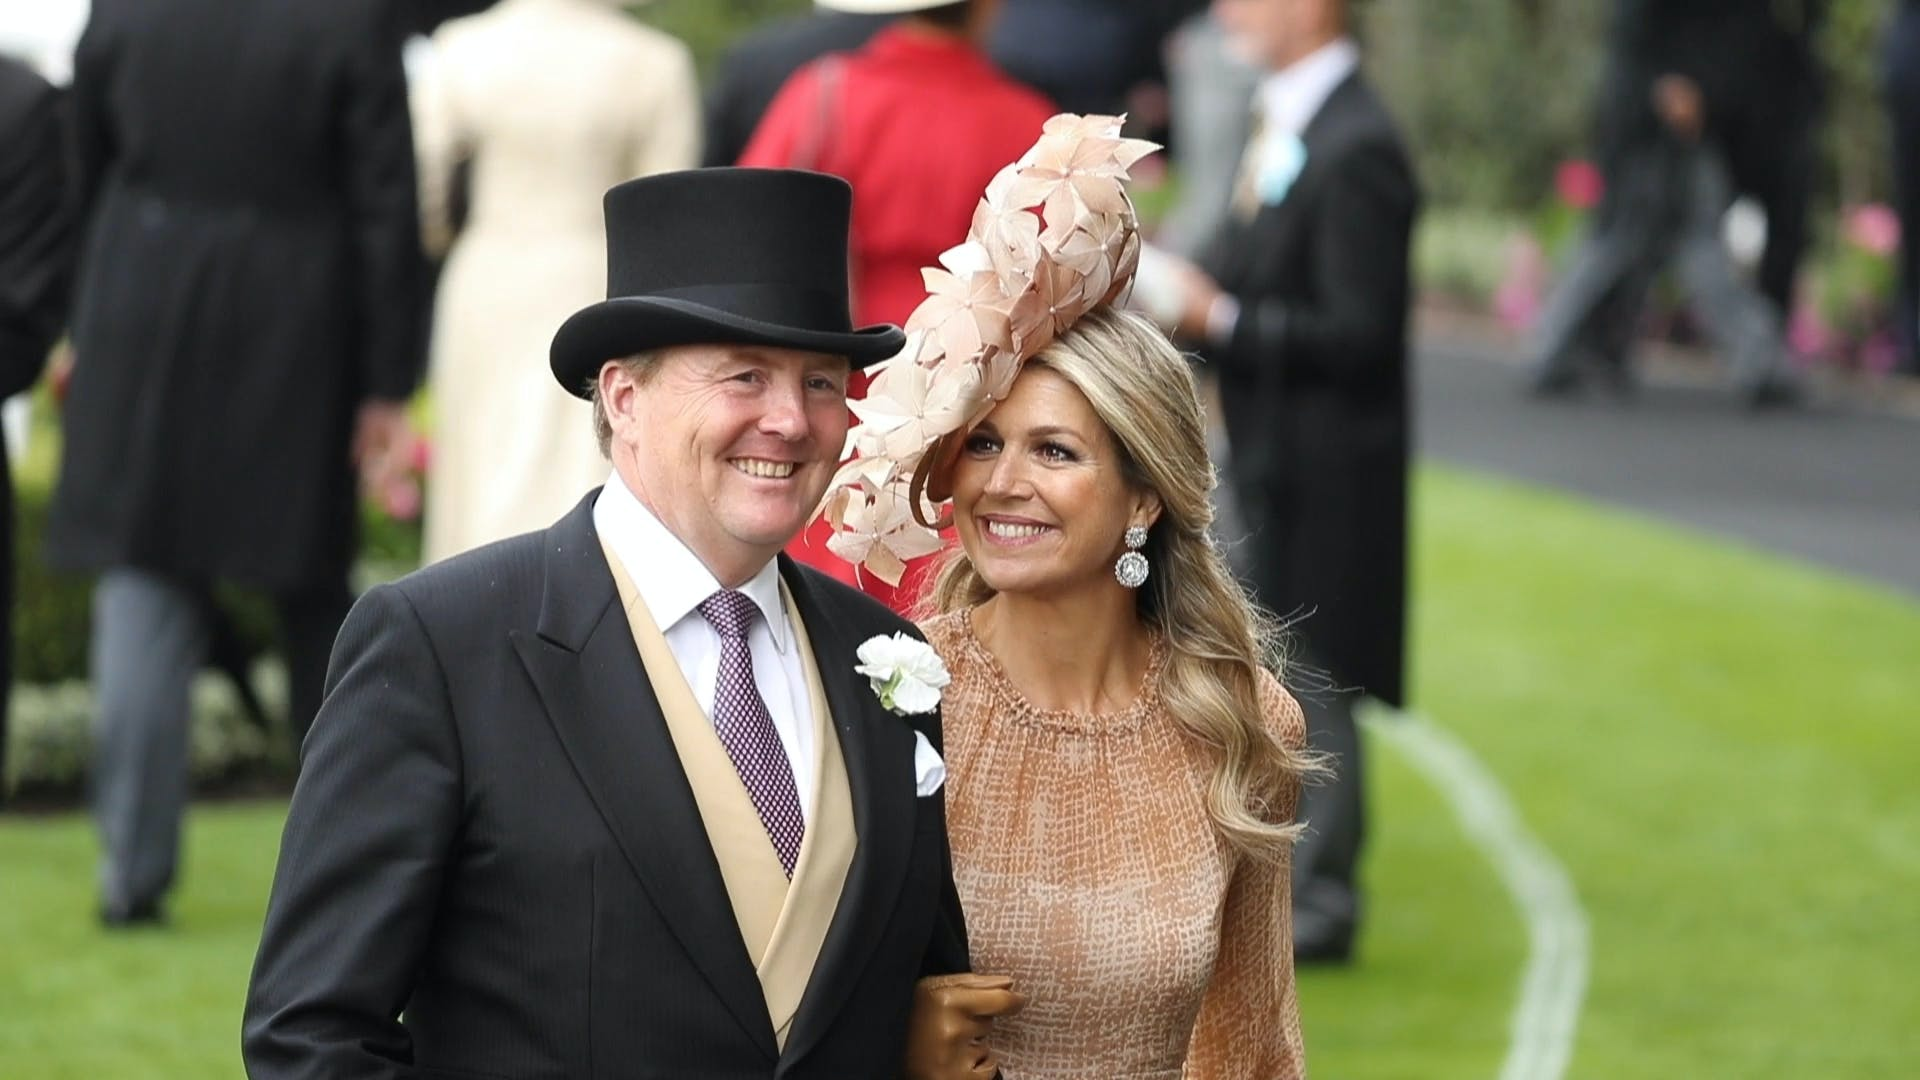 Willem-Alexander en Máxima in koets naar Royal Ascot